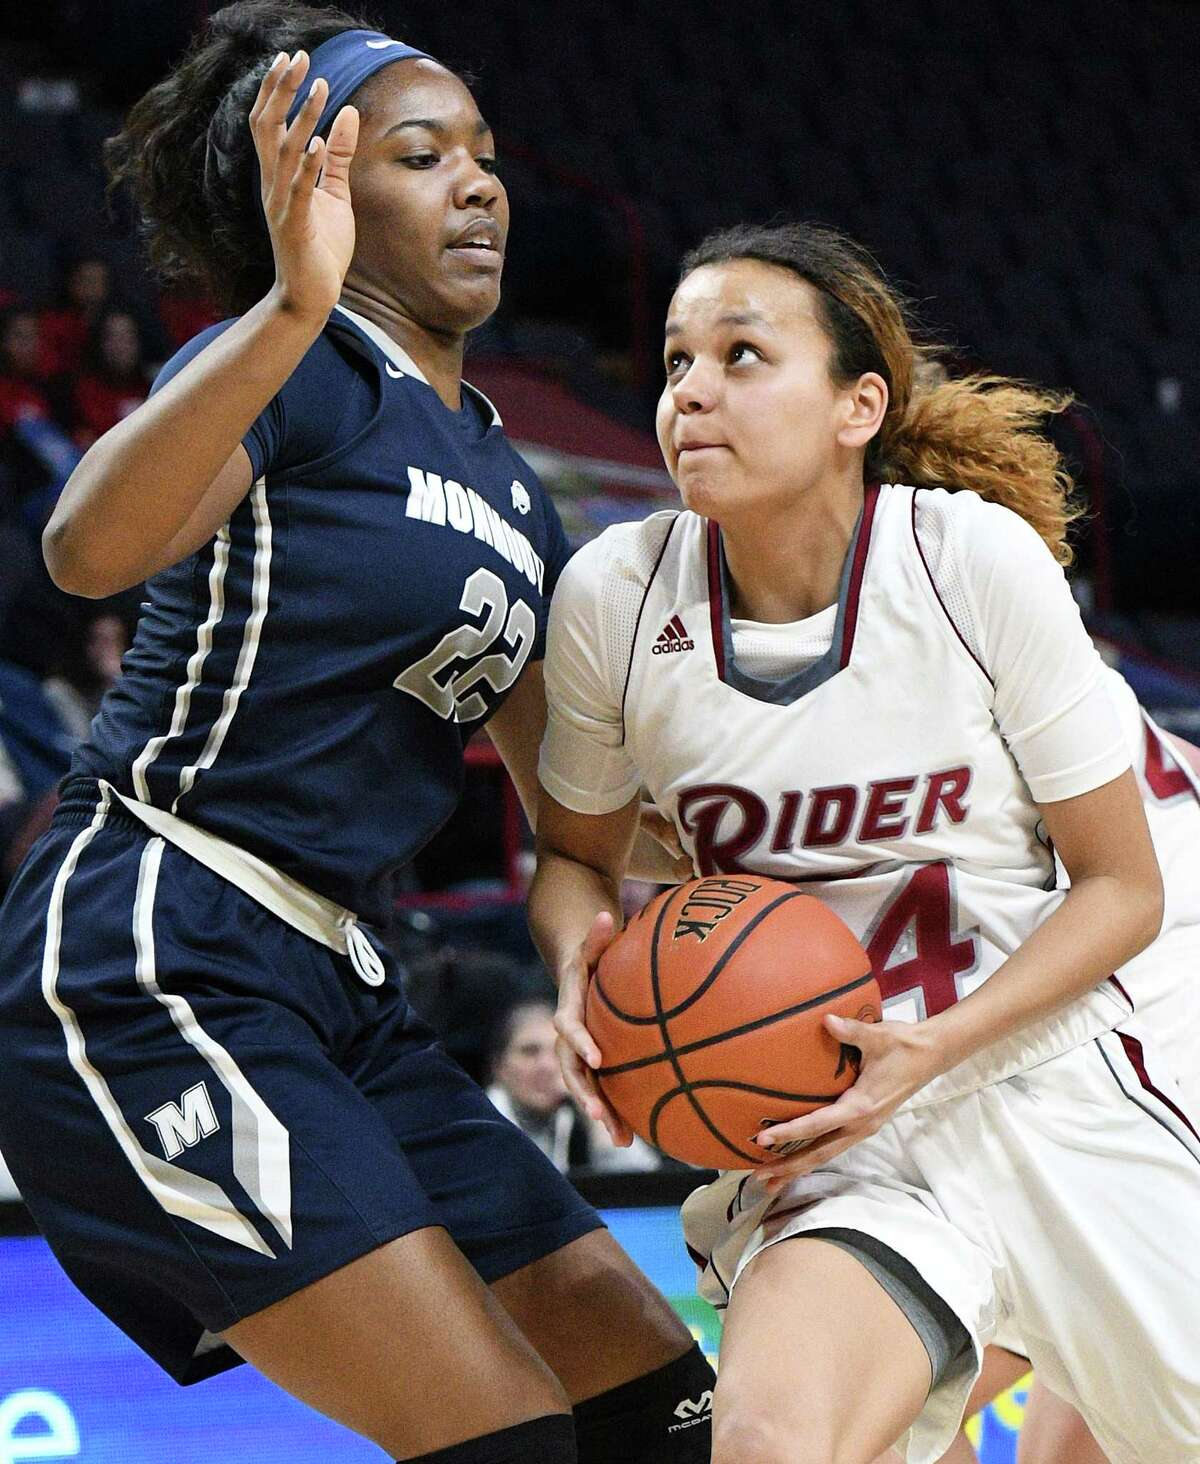 Rider's #44 Safie Tolusso,right, drives past Monmouth's #22 Alexa Middleton during their MAAC tourney game at the Times Union Center Friday March 3, 2017 in Albany, NY. (John Carl D'Annibale / Times Union)